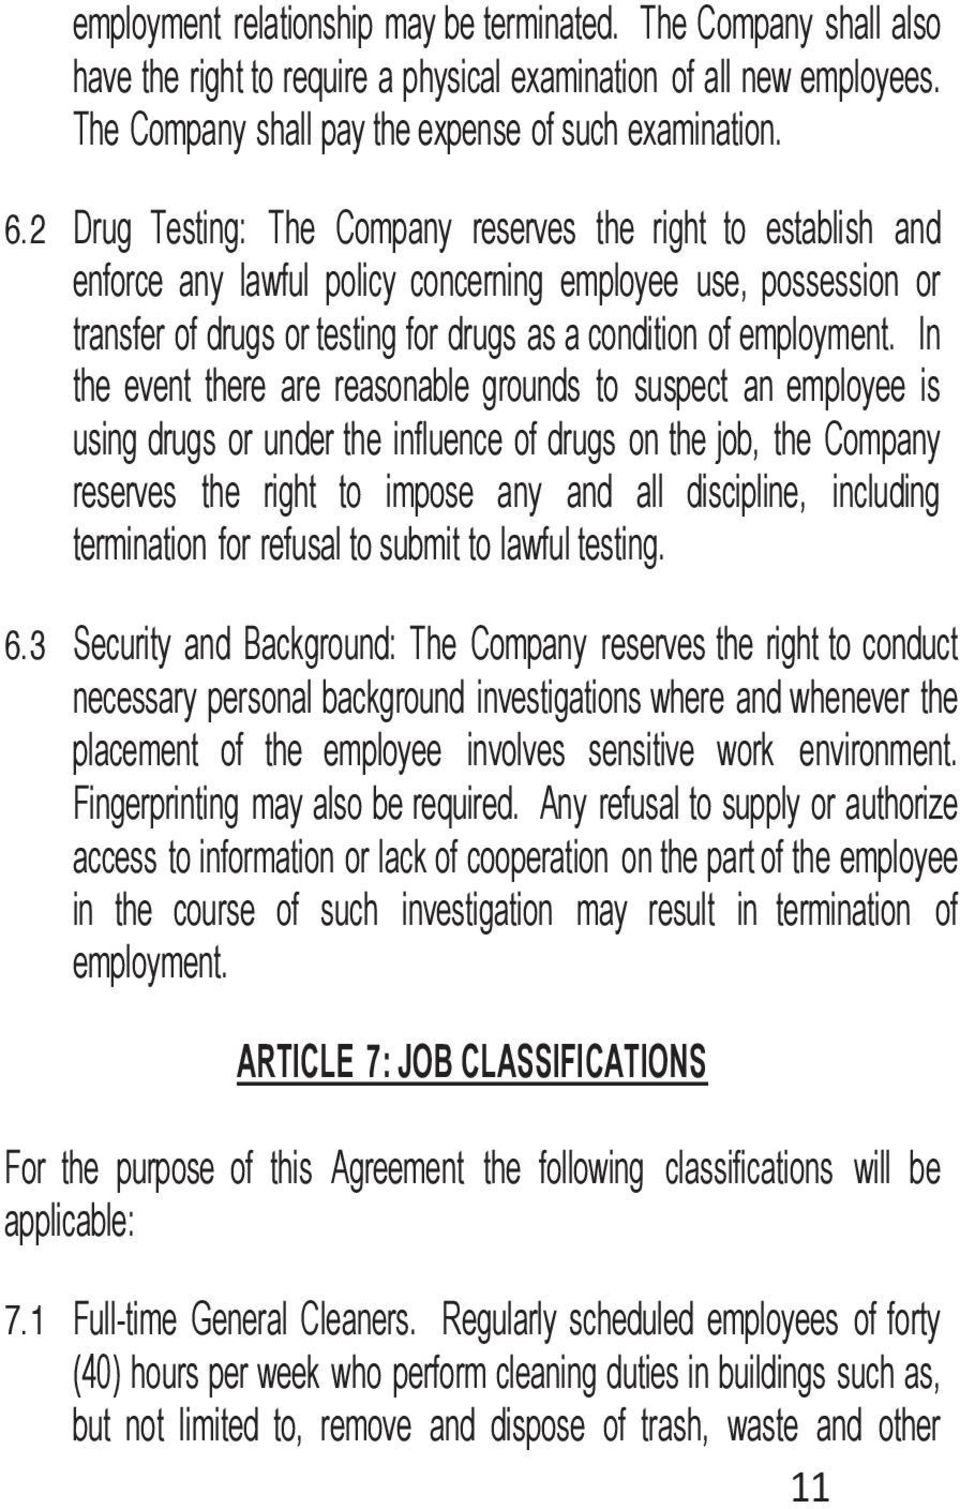 In the event there are reasonable grounds to suspect an employee is using drugs or under the influence of drugs on the job, the Company reserves the right to impose any and all discipline, including